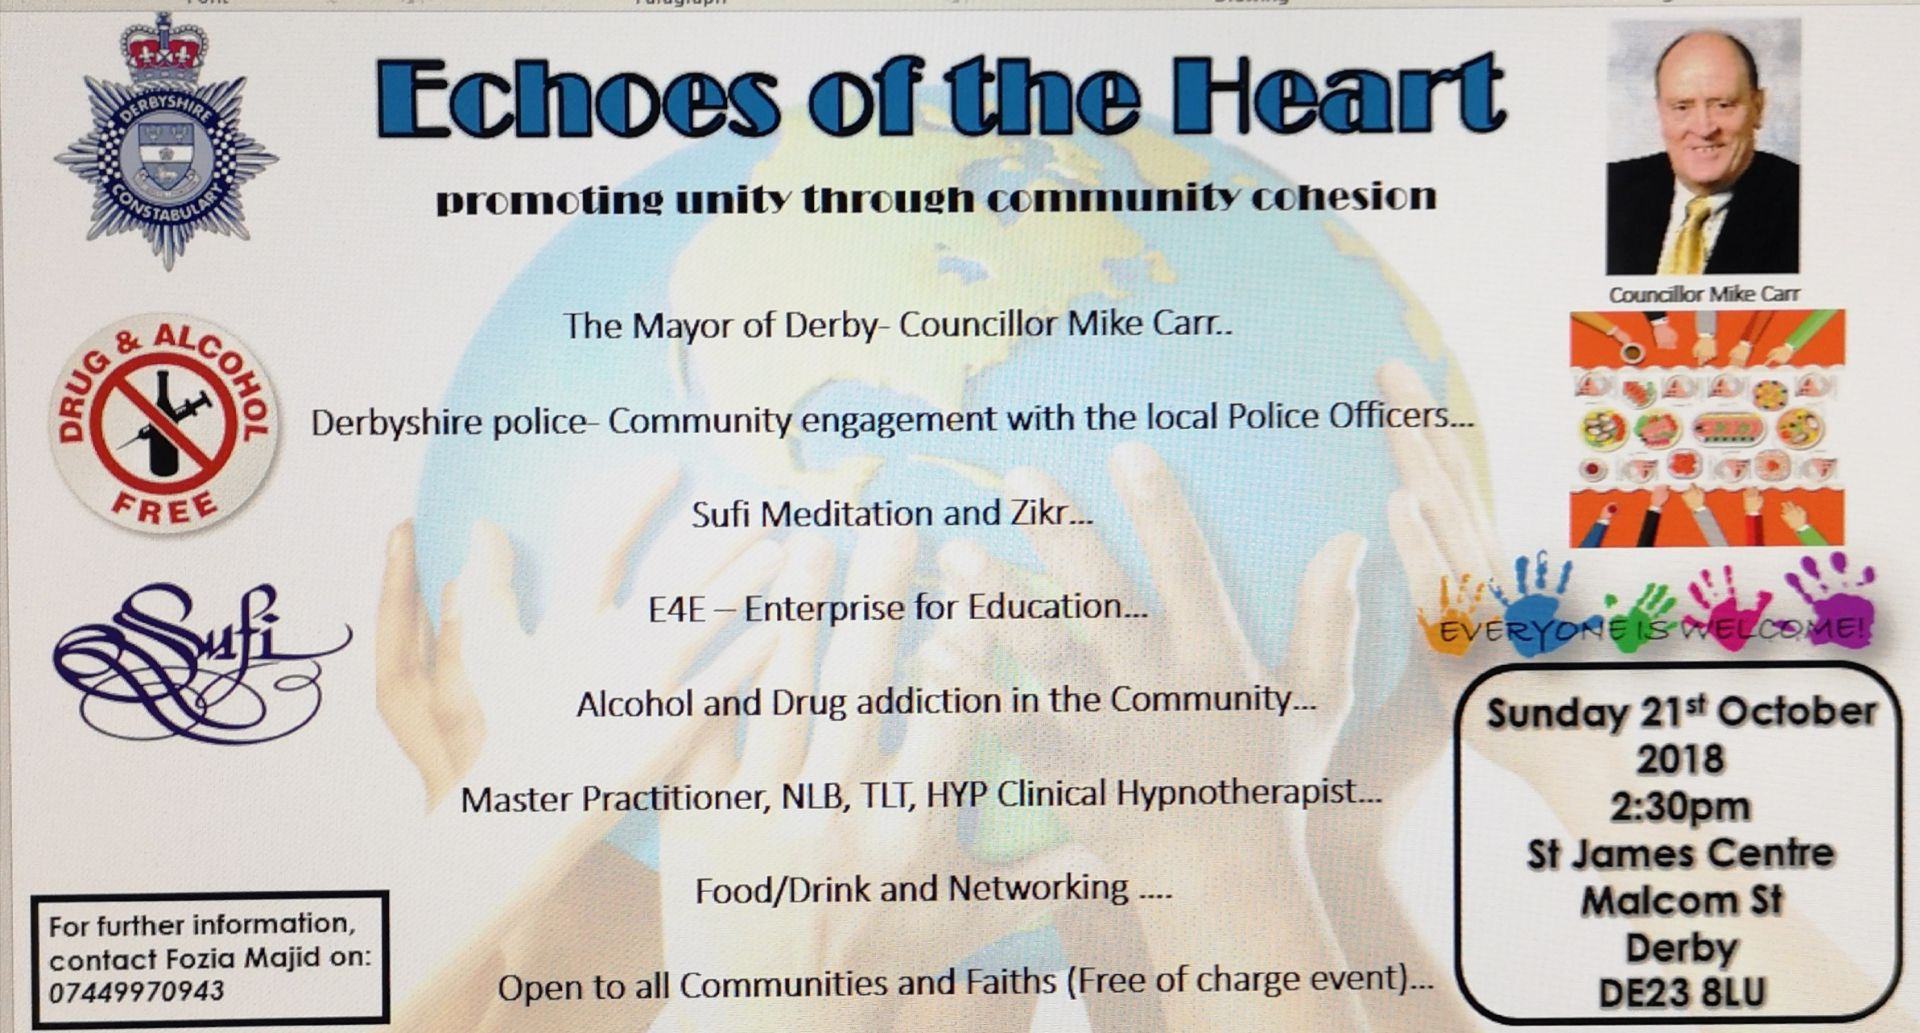 Echoes of the Heart flyer